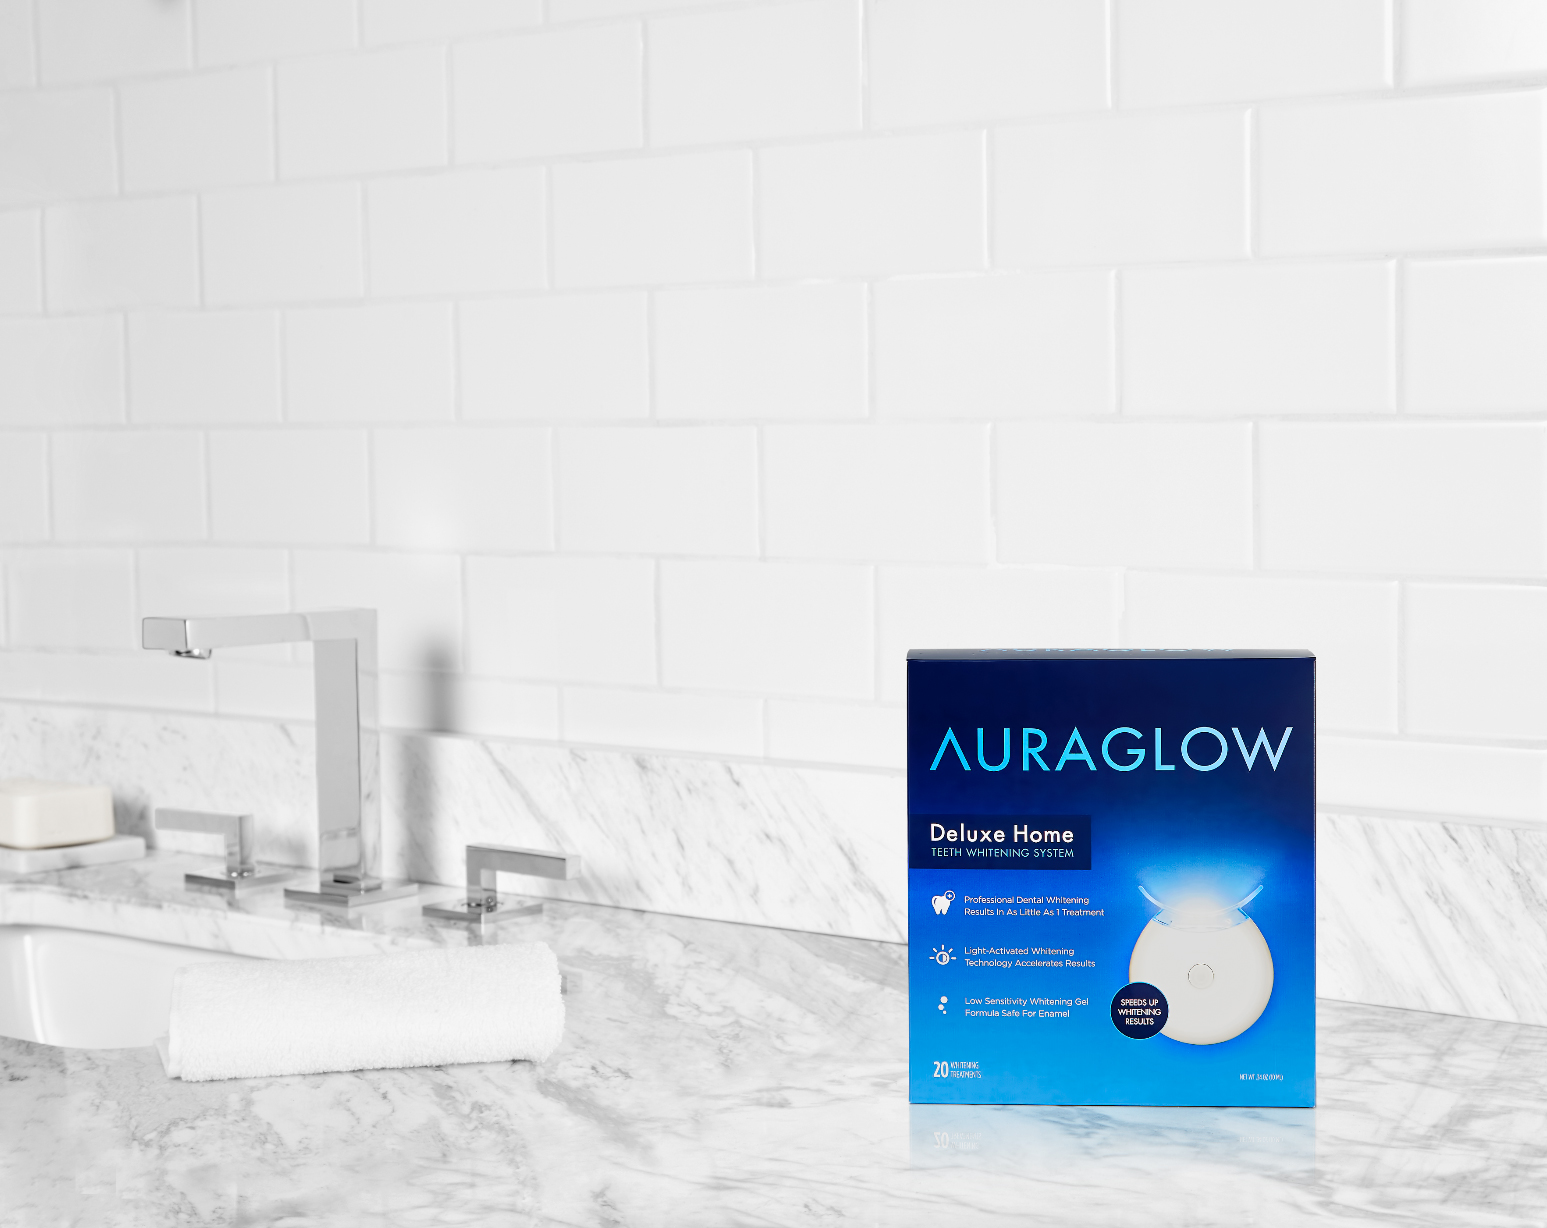 Aura-Flow-Deluxe-Home-Teeth-Whitening-System - Professional whitening gel meets LED light technology to remove stains in just 30 minutes per day. $59.99, auraglow.com